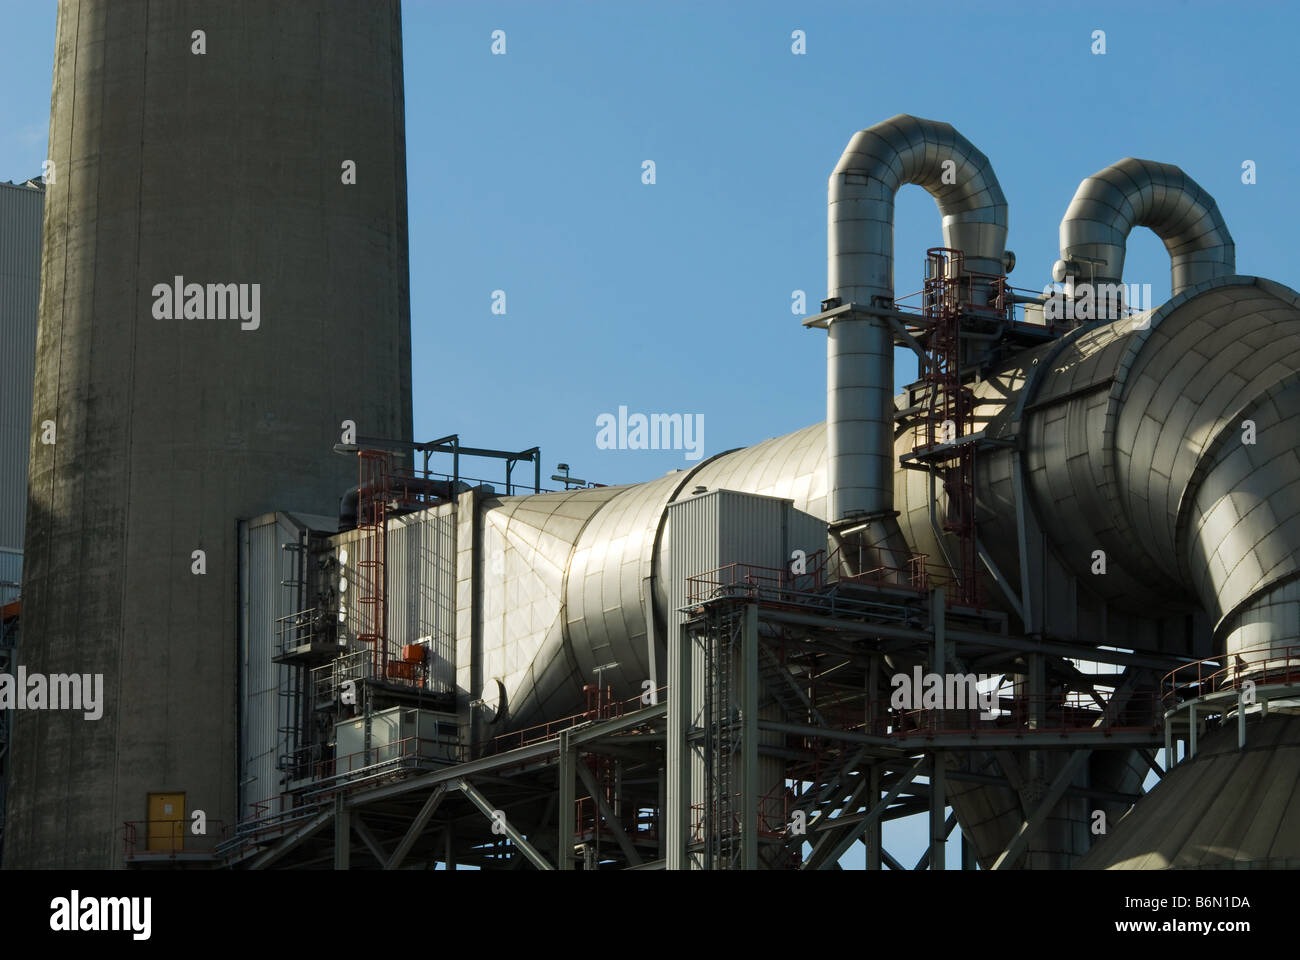 Industrial Process Plant Chimney Stock Photos & Industrial